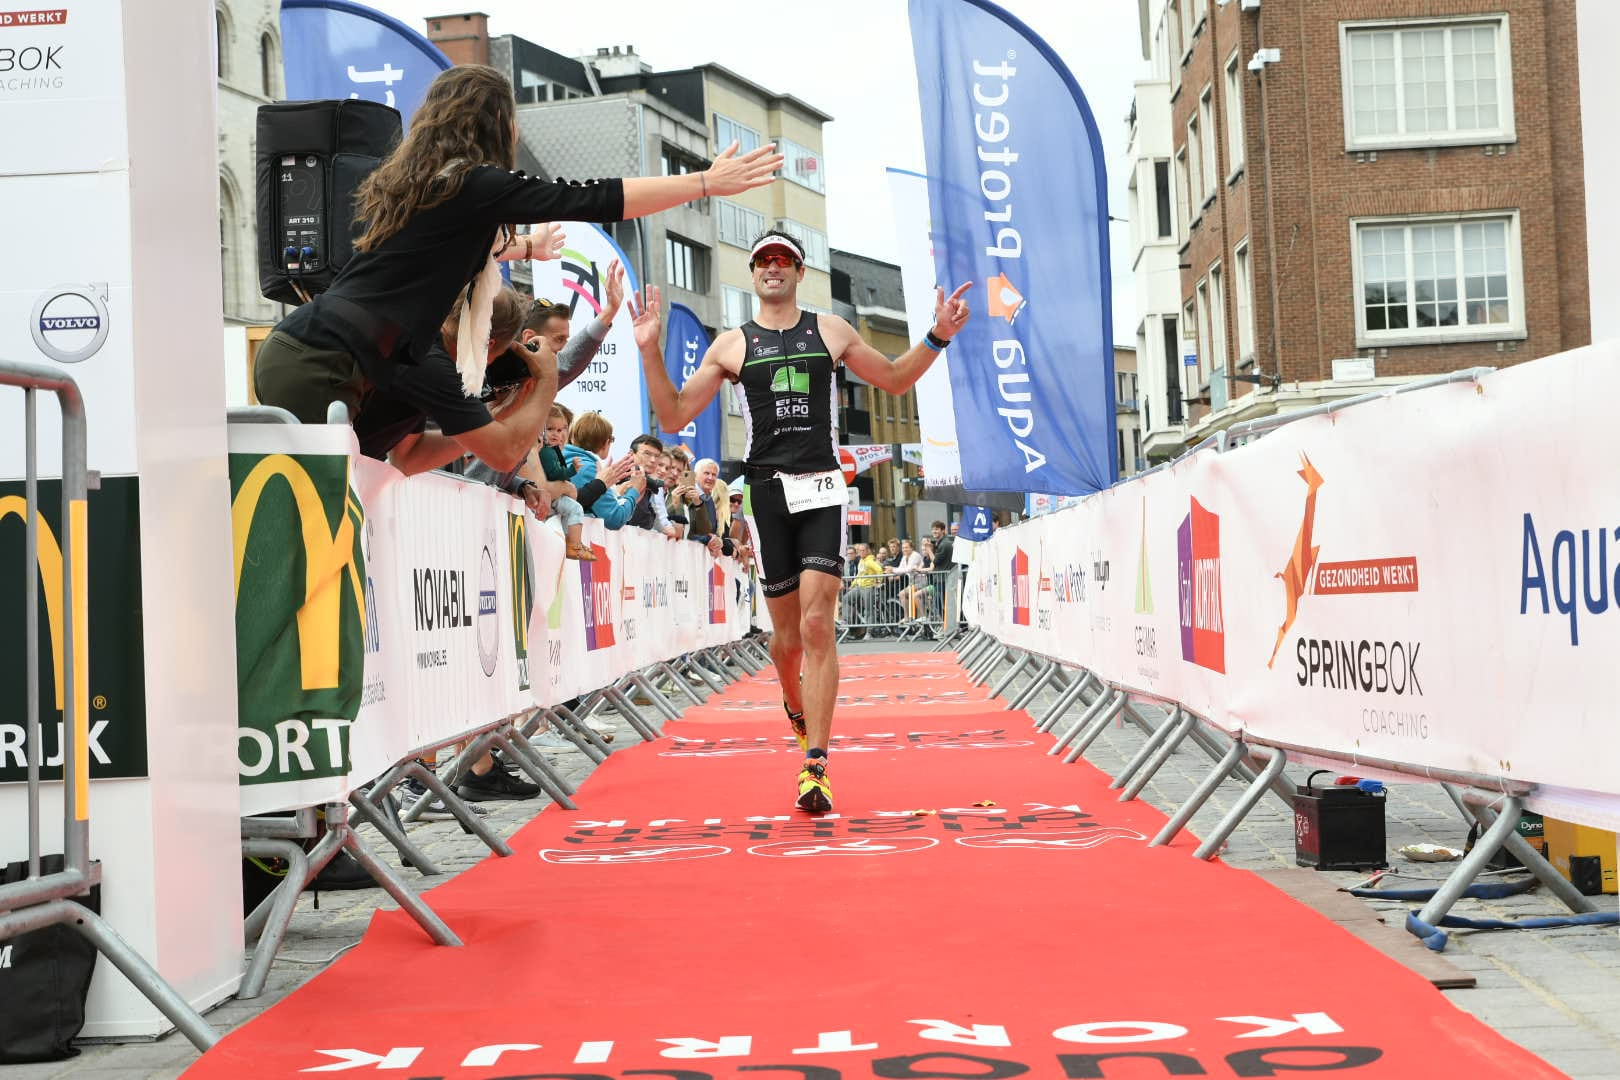 Hannes Cool wint in Kortrijk (foto: 3athlon.be/Mario Vanacker)